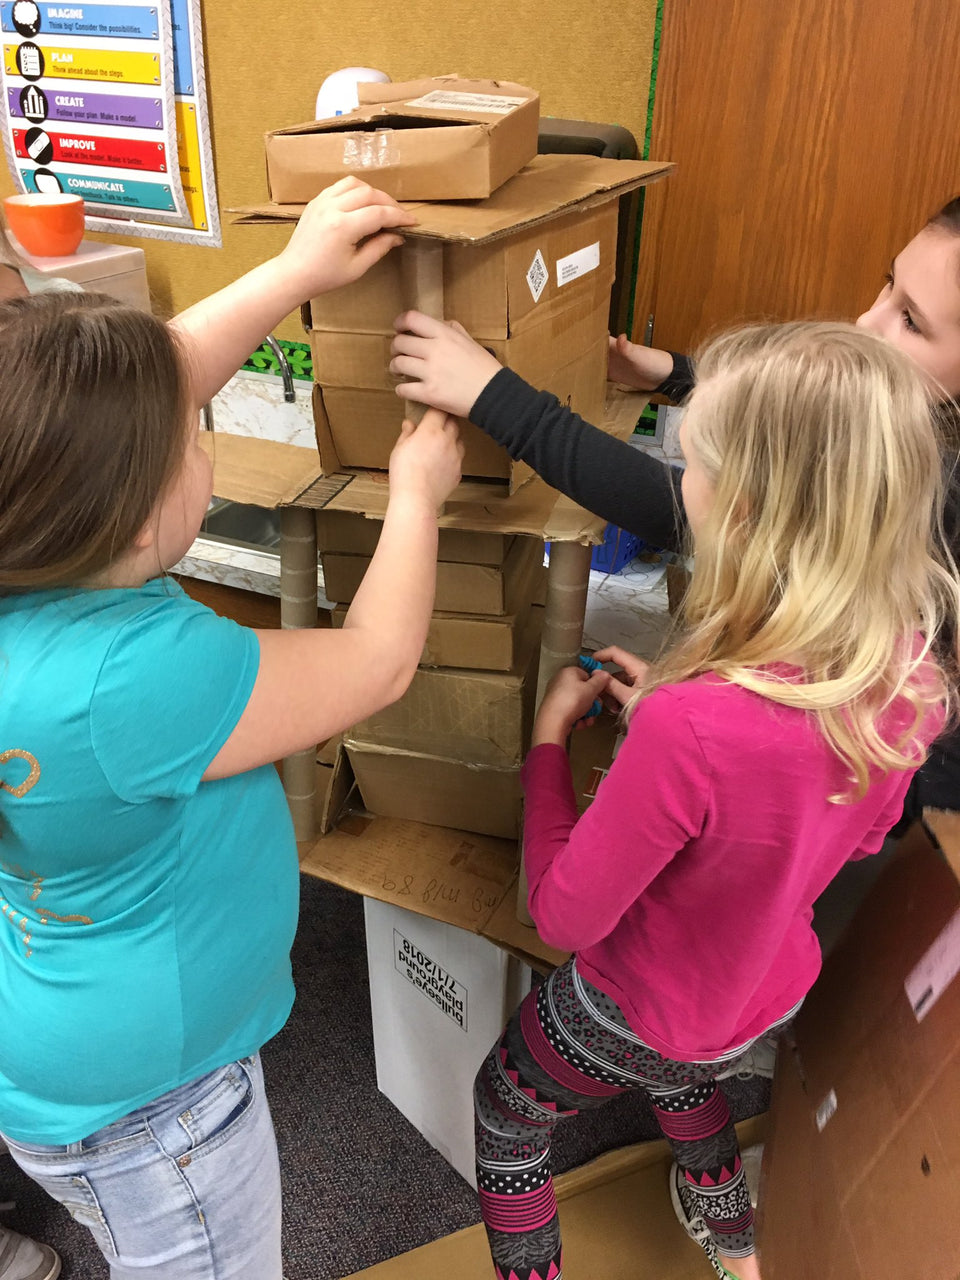 Cardboard challenge - which team can build the tallest tower with Makedo